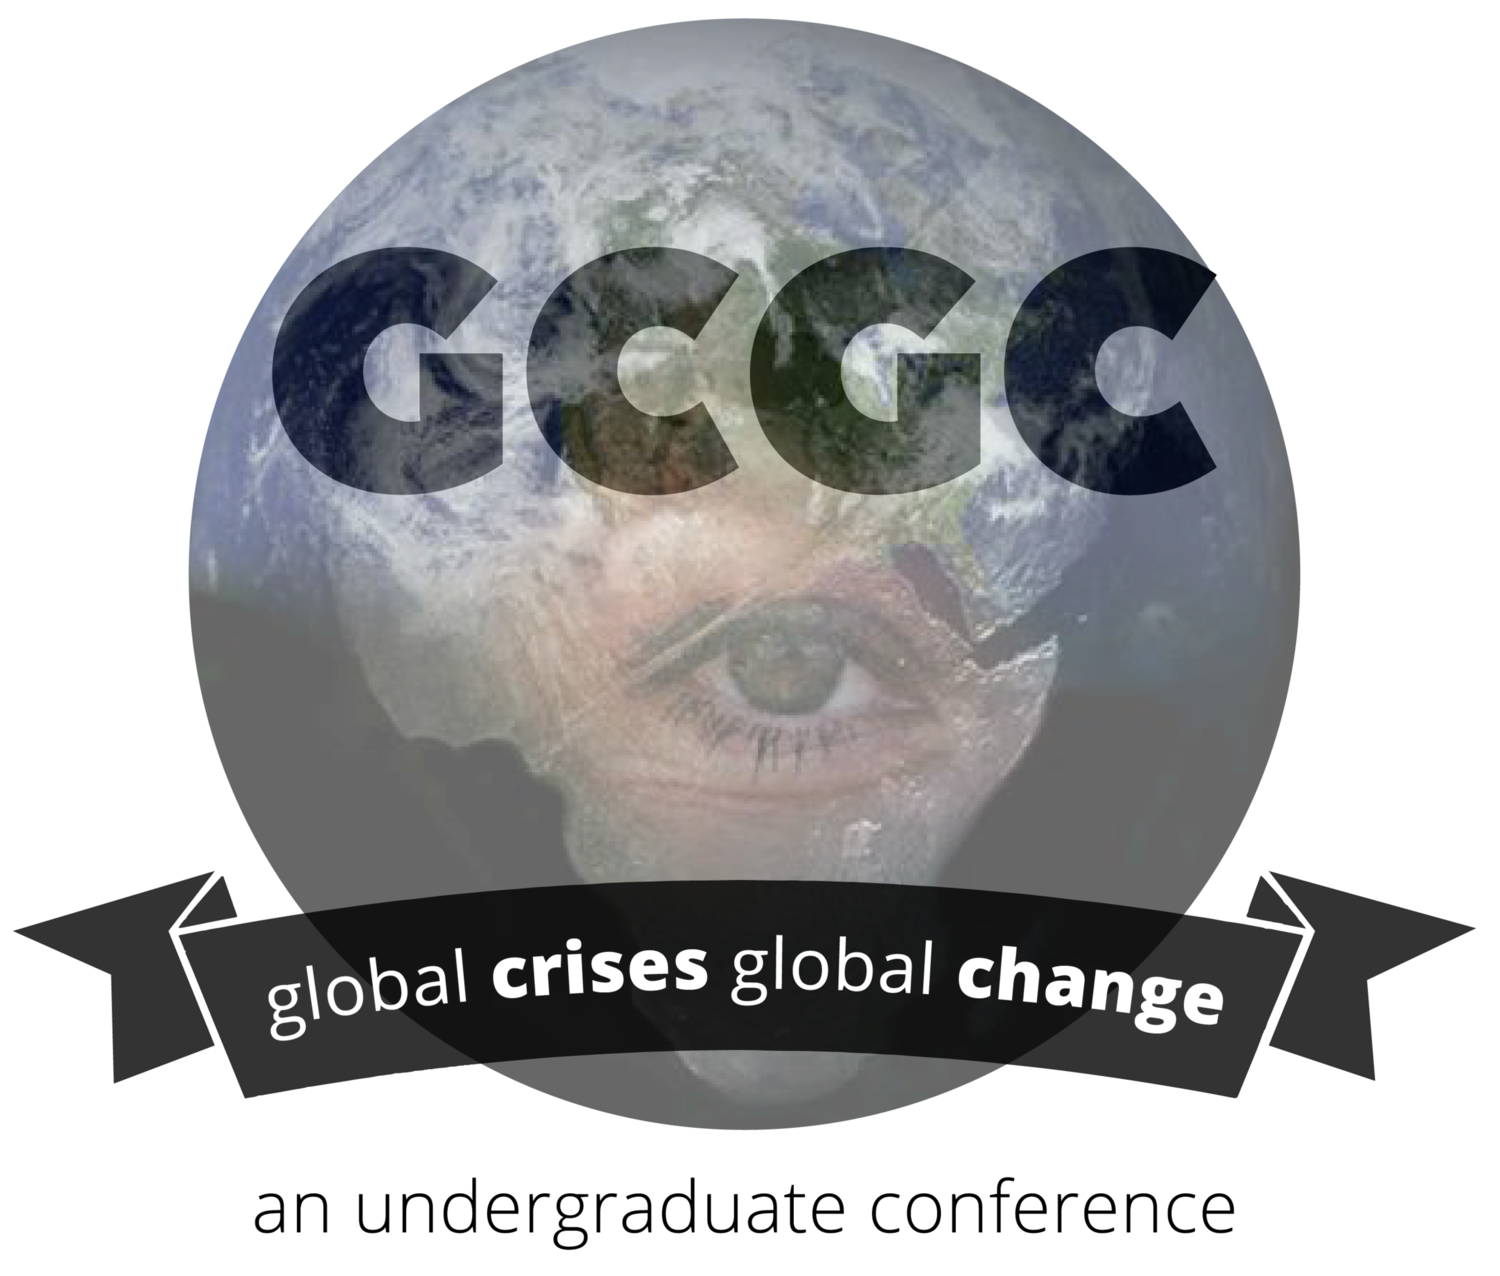 Global Crises and Global Change Undergraduate Conference